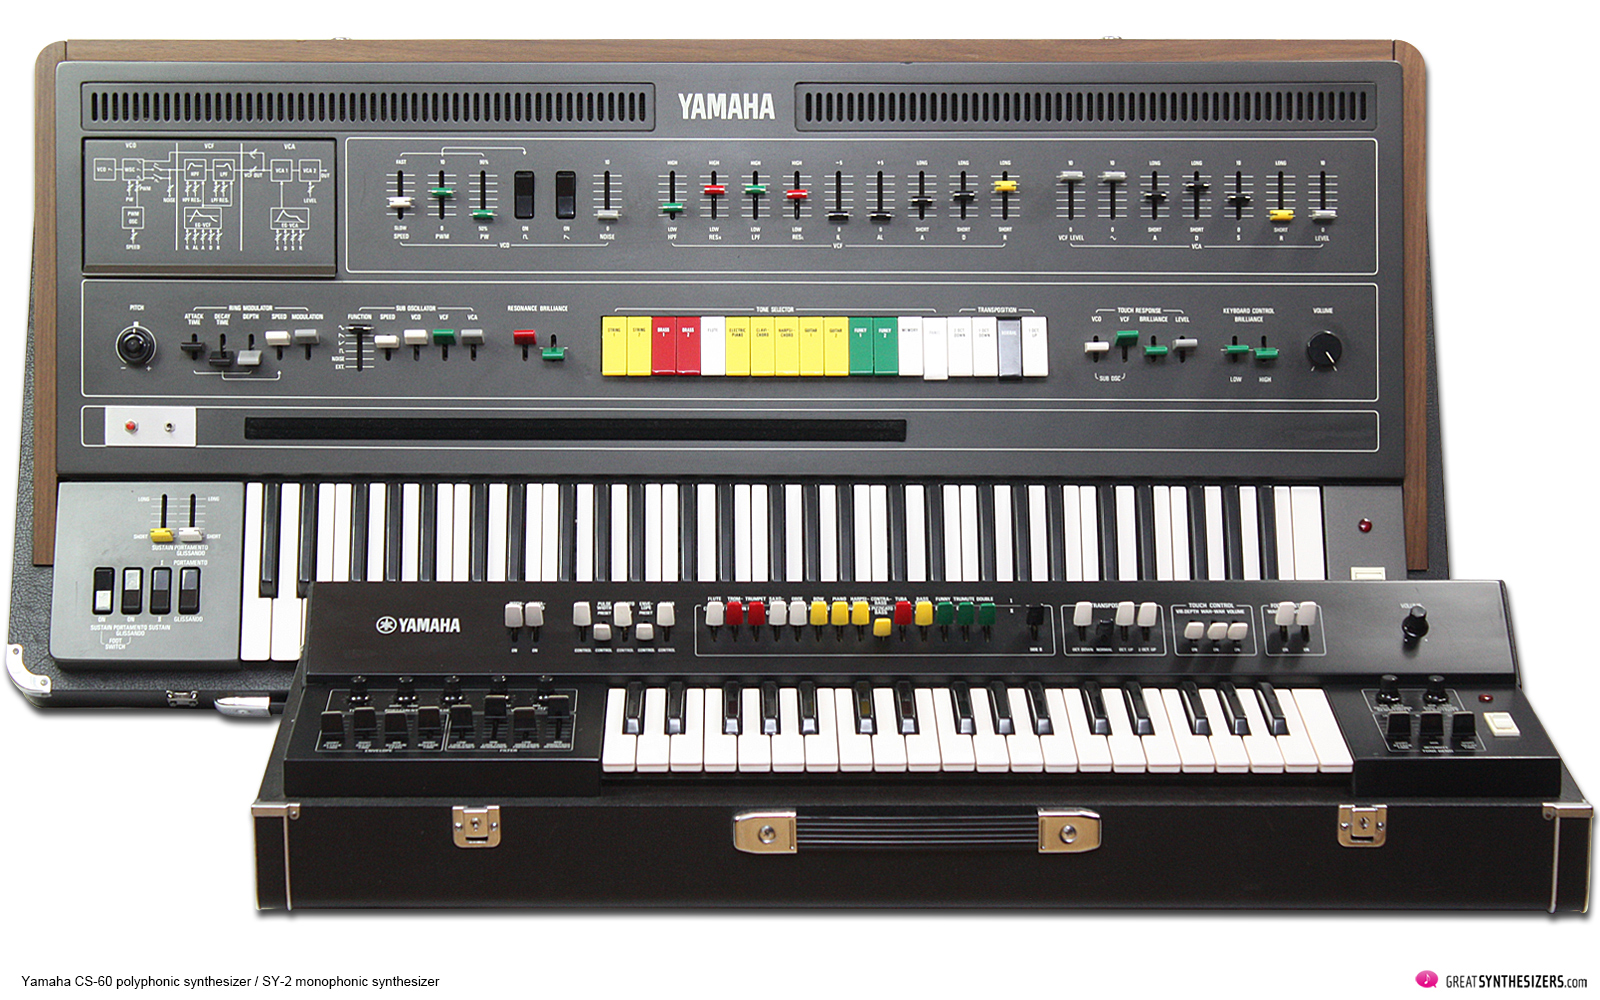 Yamaha CS-60 Synthesizer / Yamaha SY-2 Synthesizer